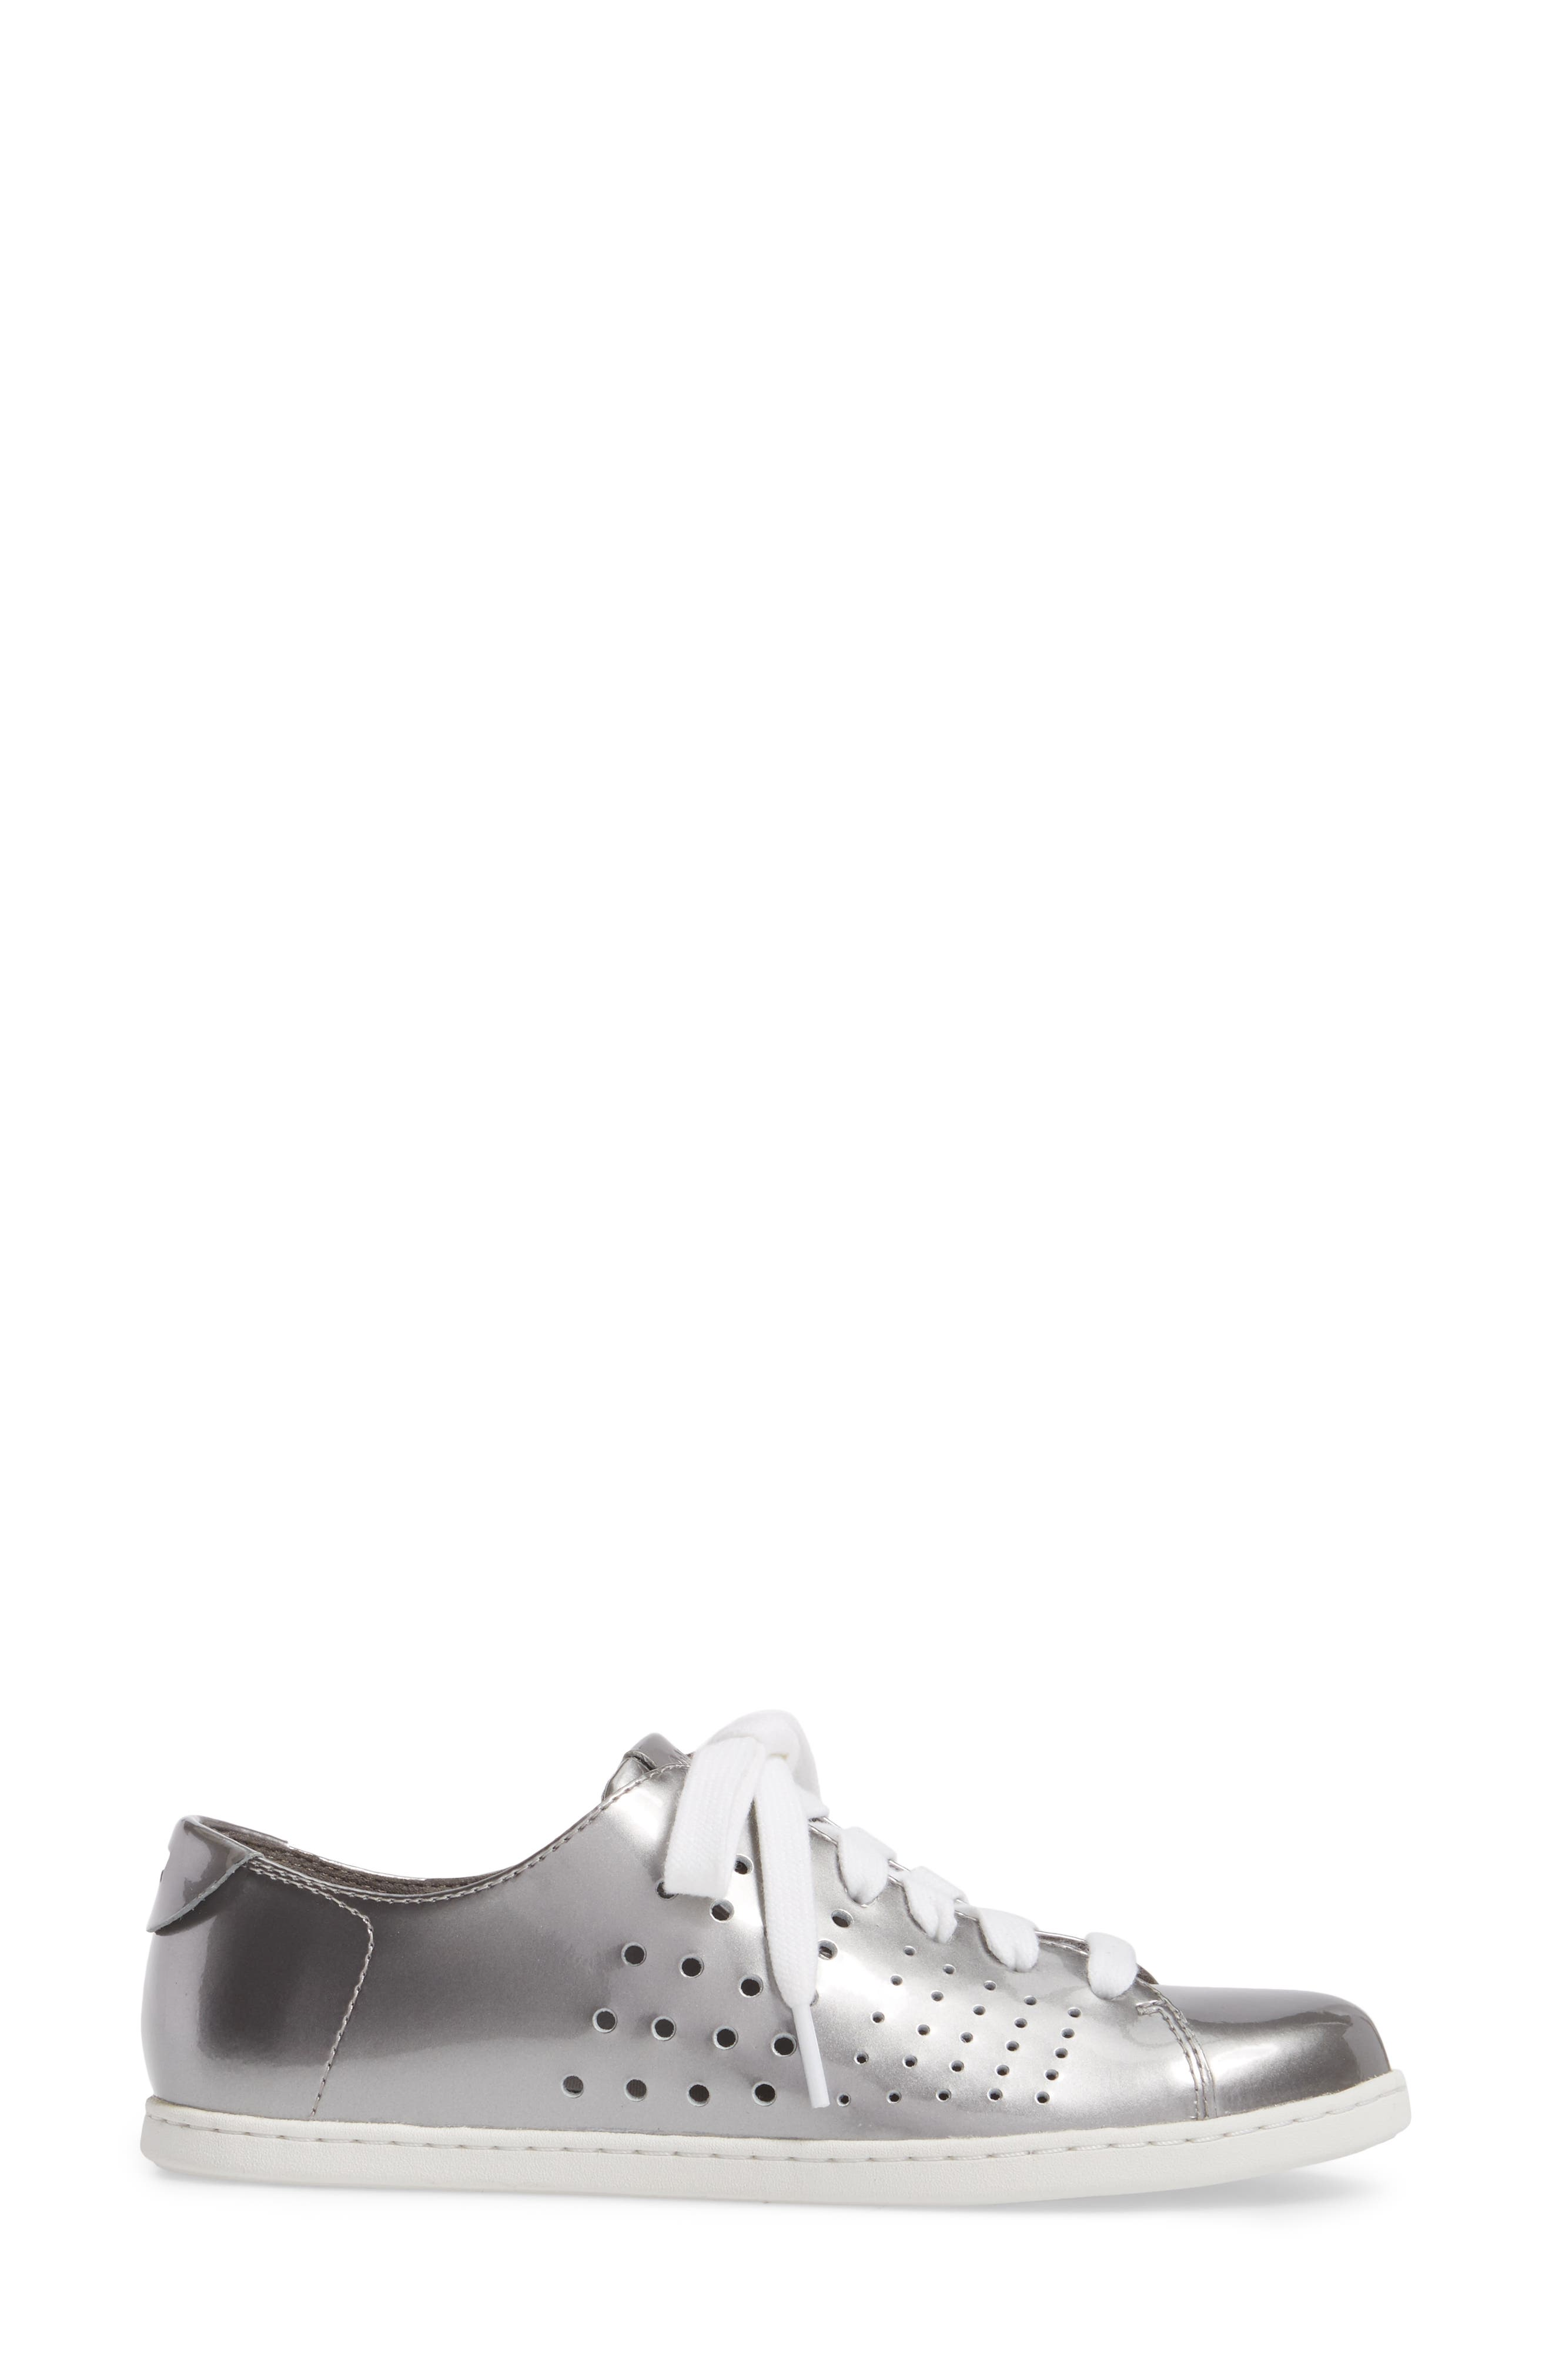 Twins Perforated Low Top Sneaker,                             Alternate thumbnail 3, color,                             Medium Gray Leather